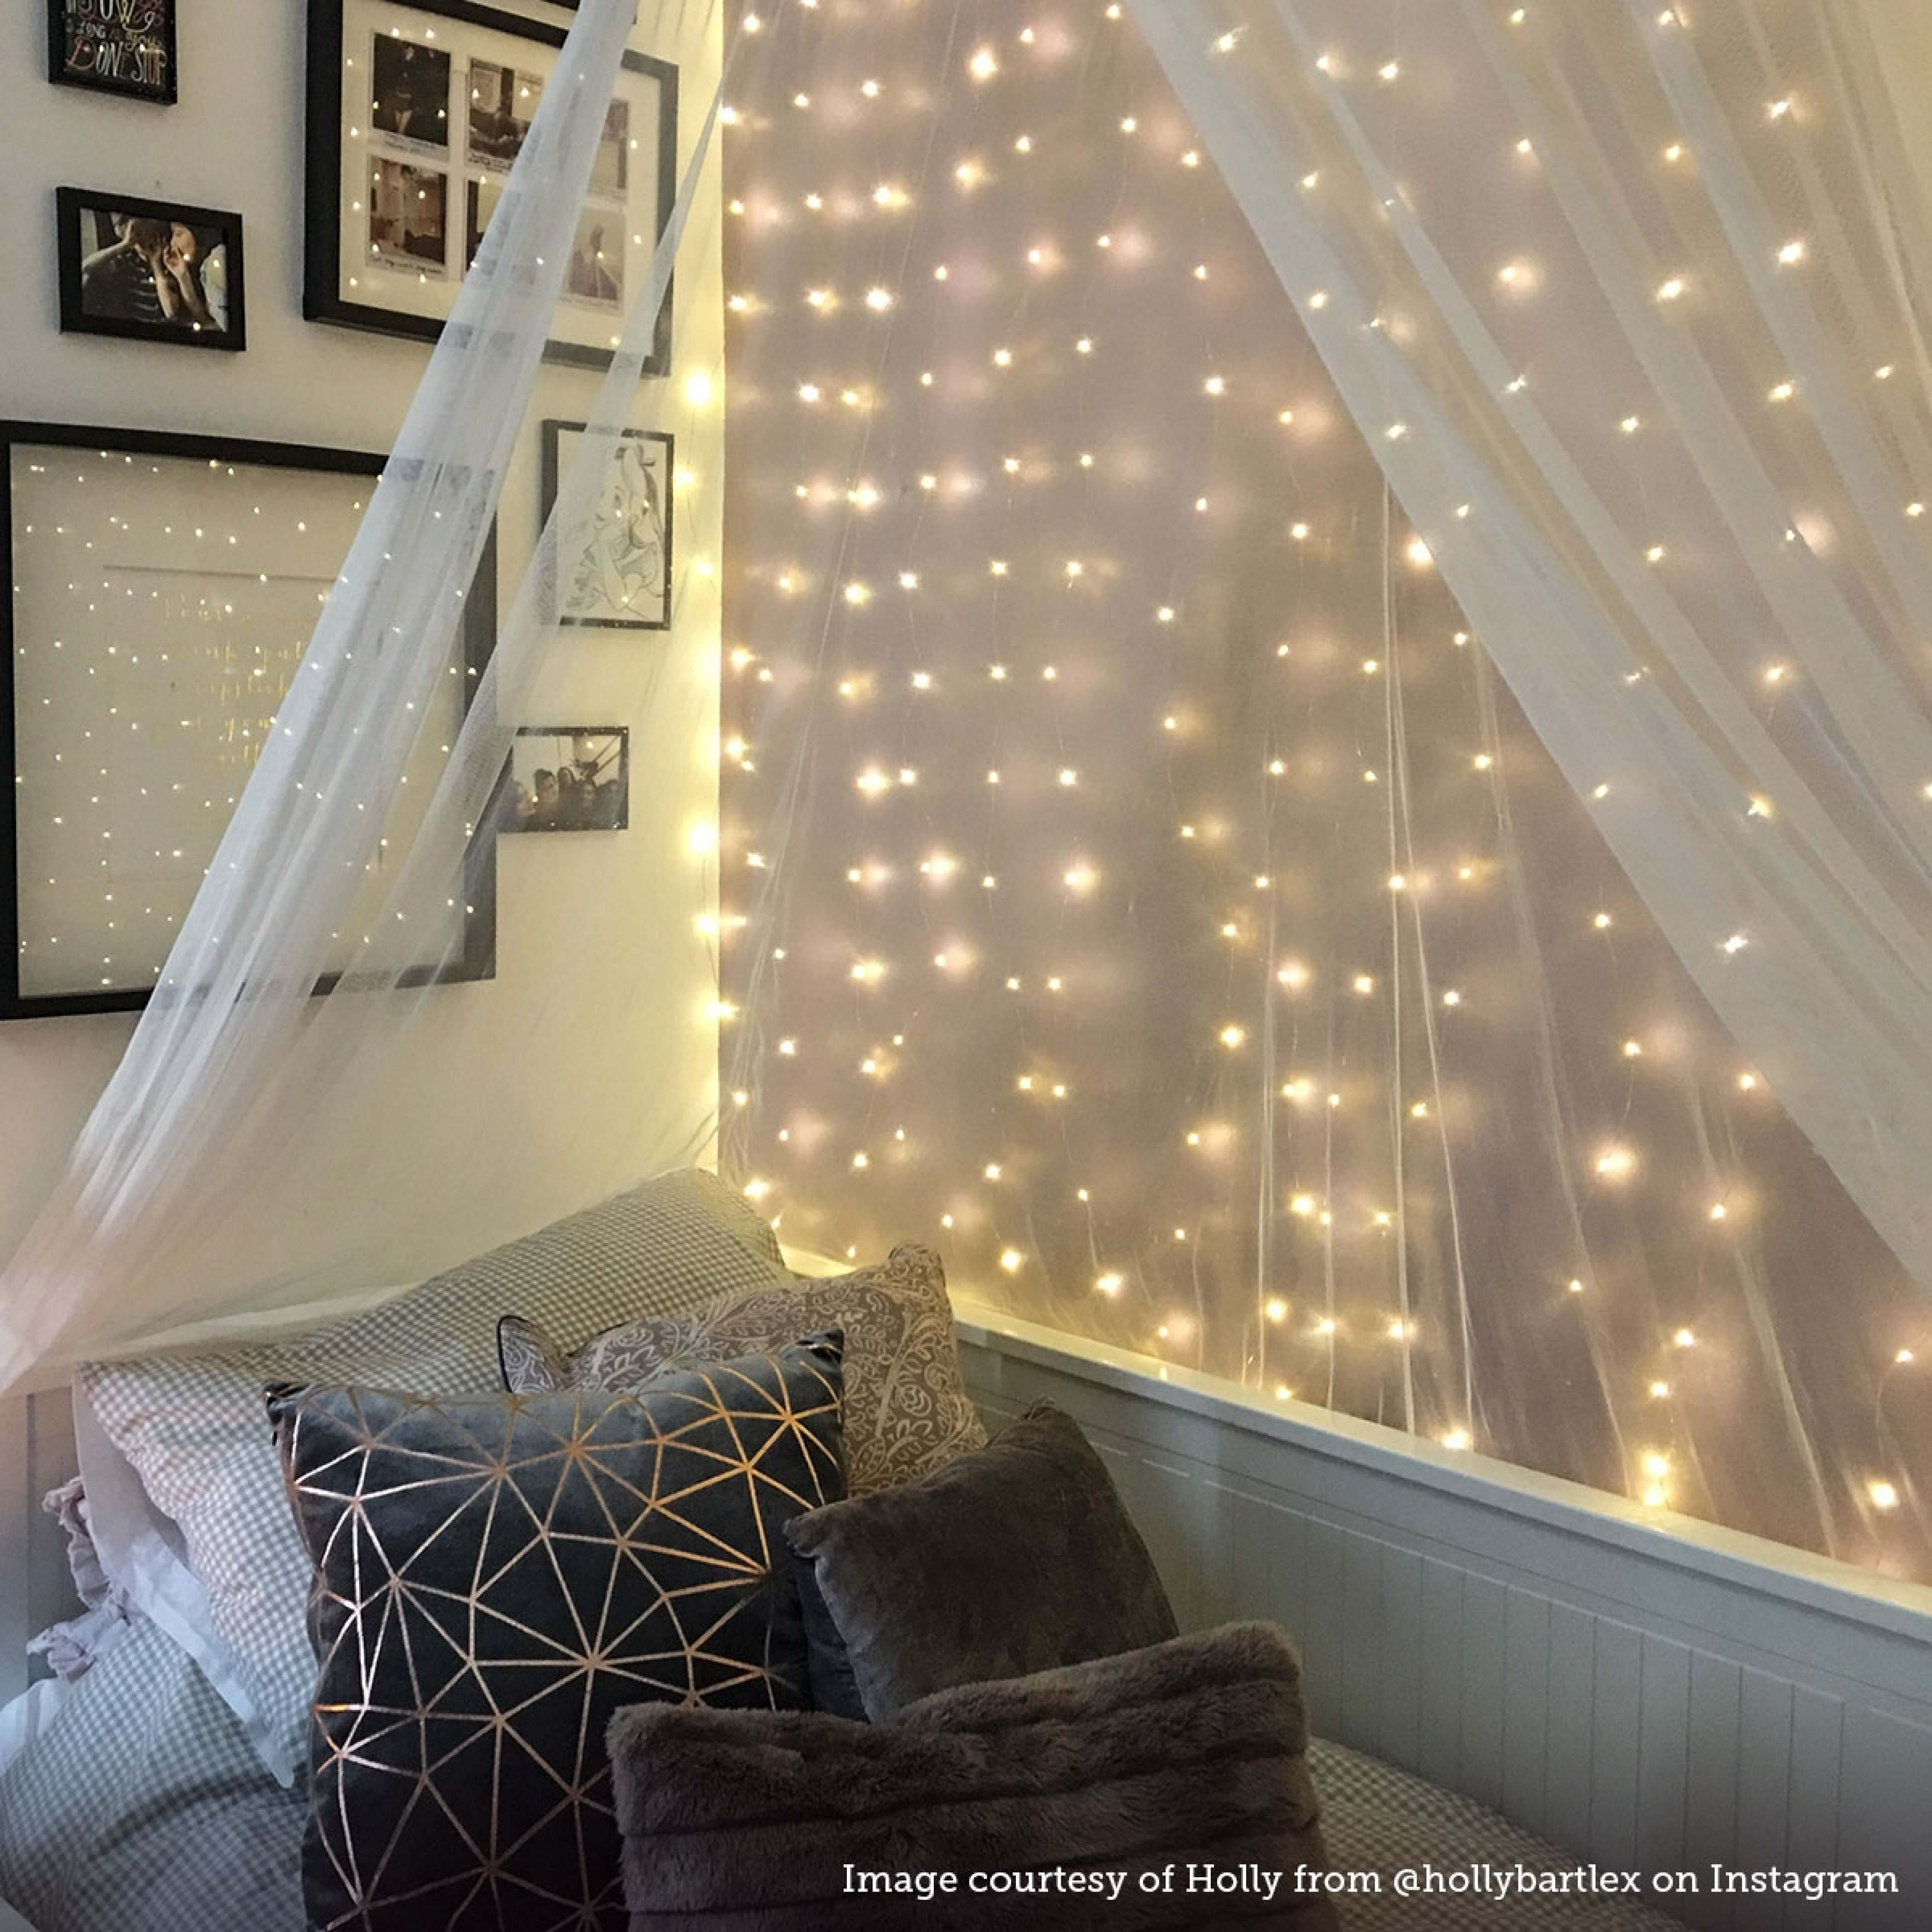 2m X 2m Plug In Copper Firefly Wire Curtain Lights 400 Warm White Leds Wall Decor Bedroom Fairy Lights Bedroom Bedroom Decor Design